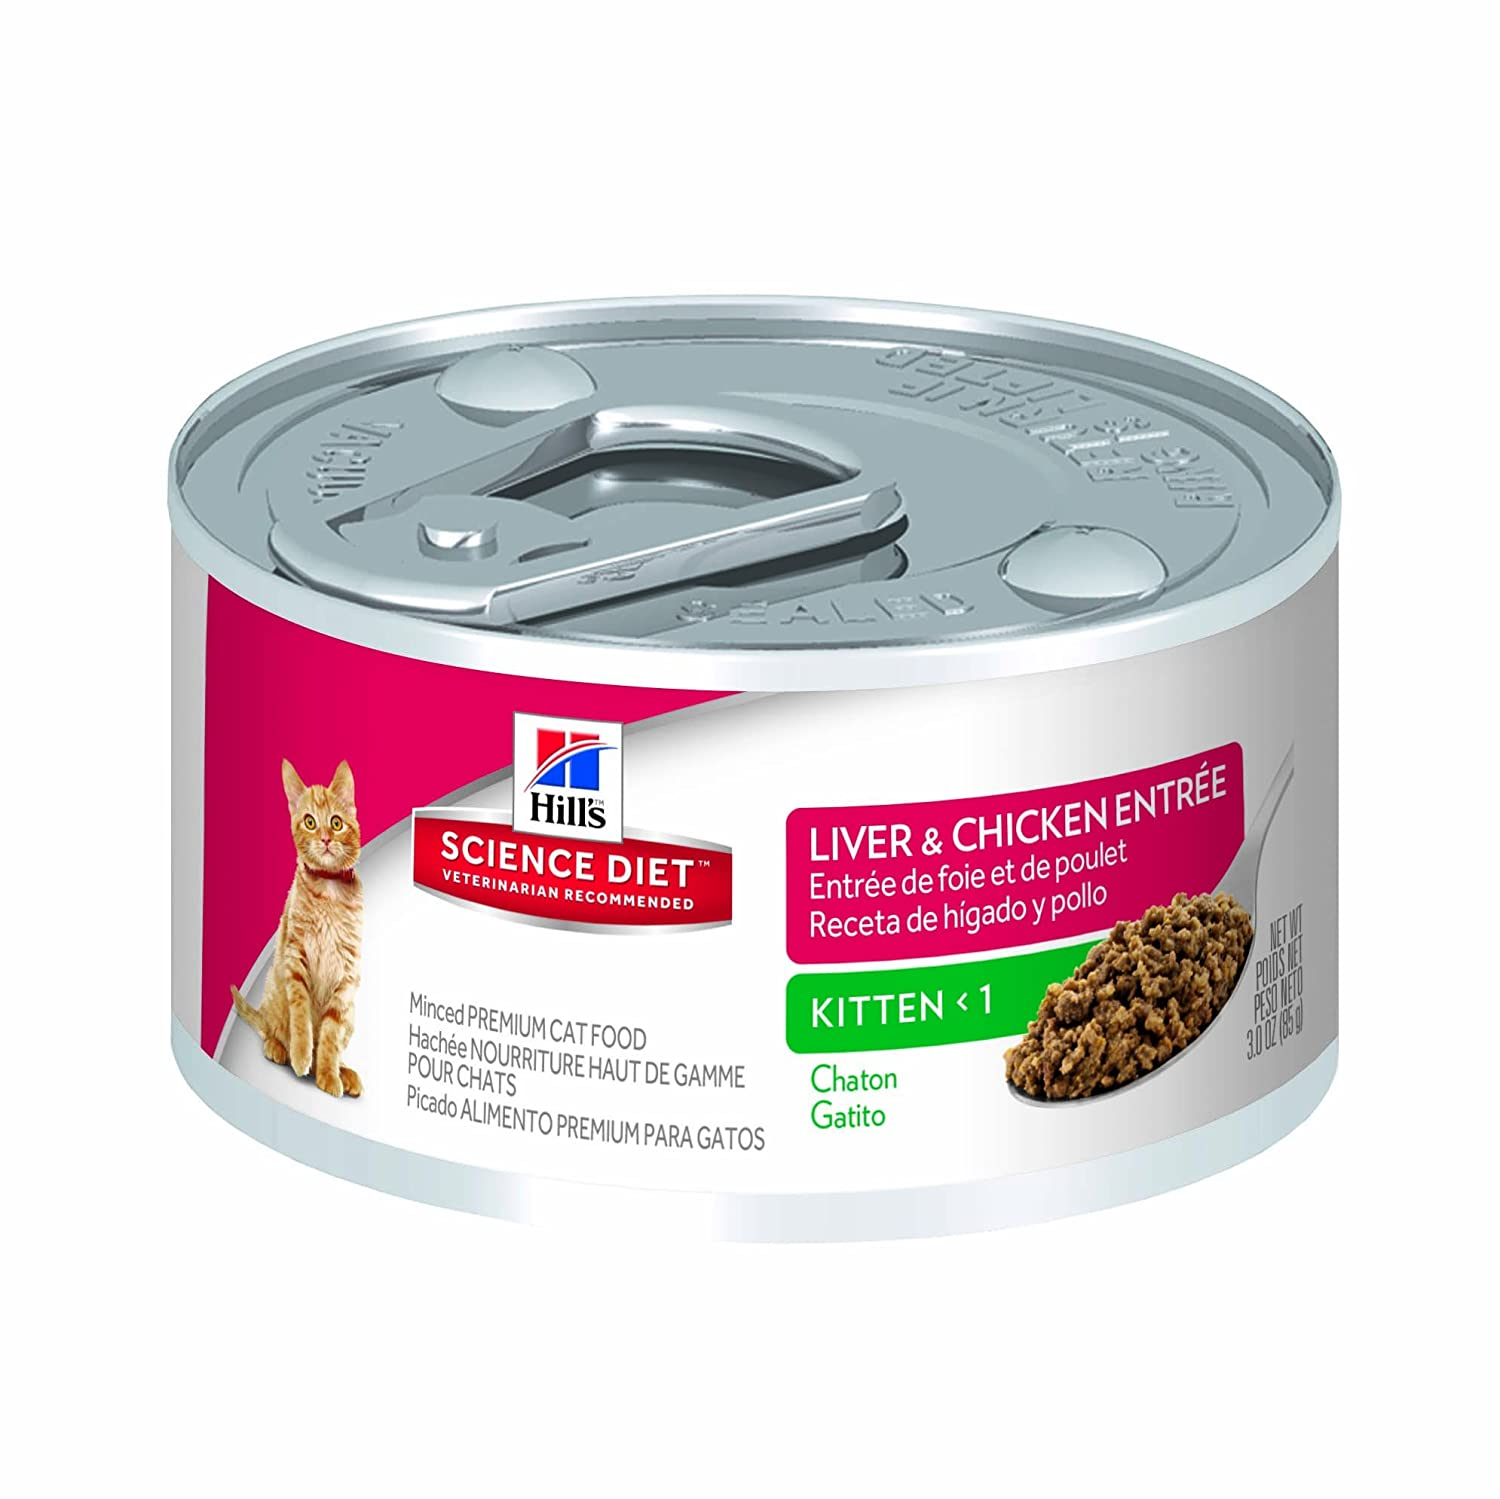 Amazon.com : HillS Science Diet Kitten Liver And Chicken Entree Minced Cat Food, 3 Oz, 24-Pack : Canned Wet Pet Food : Pet Supplies